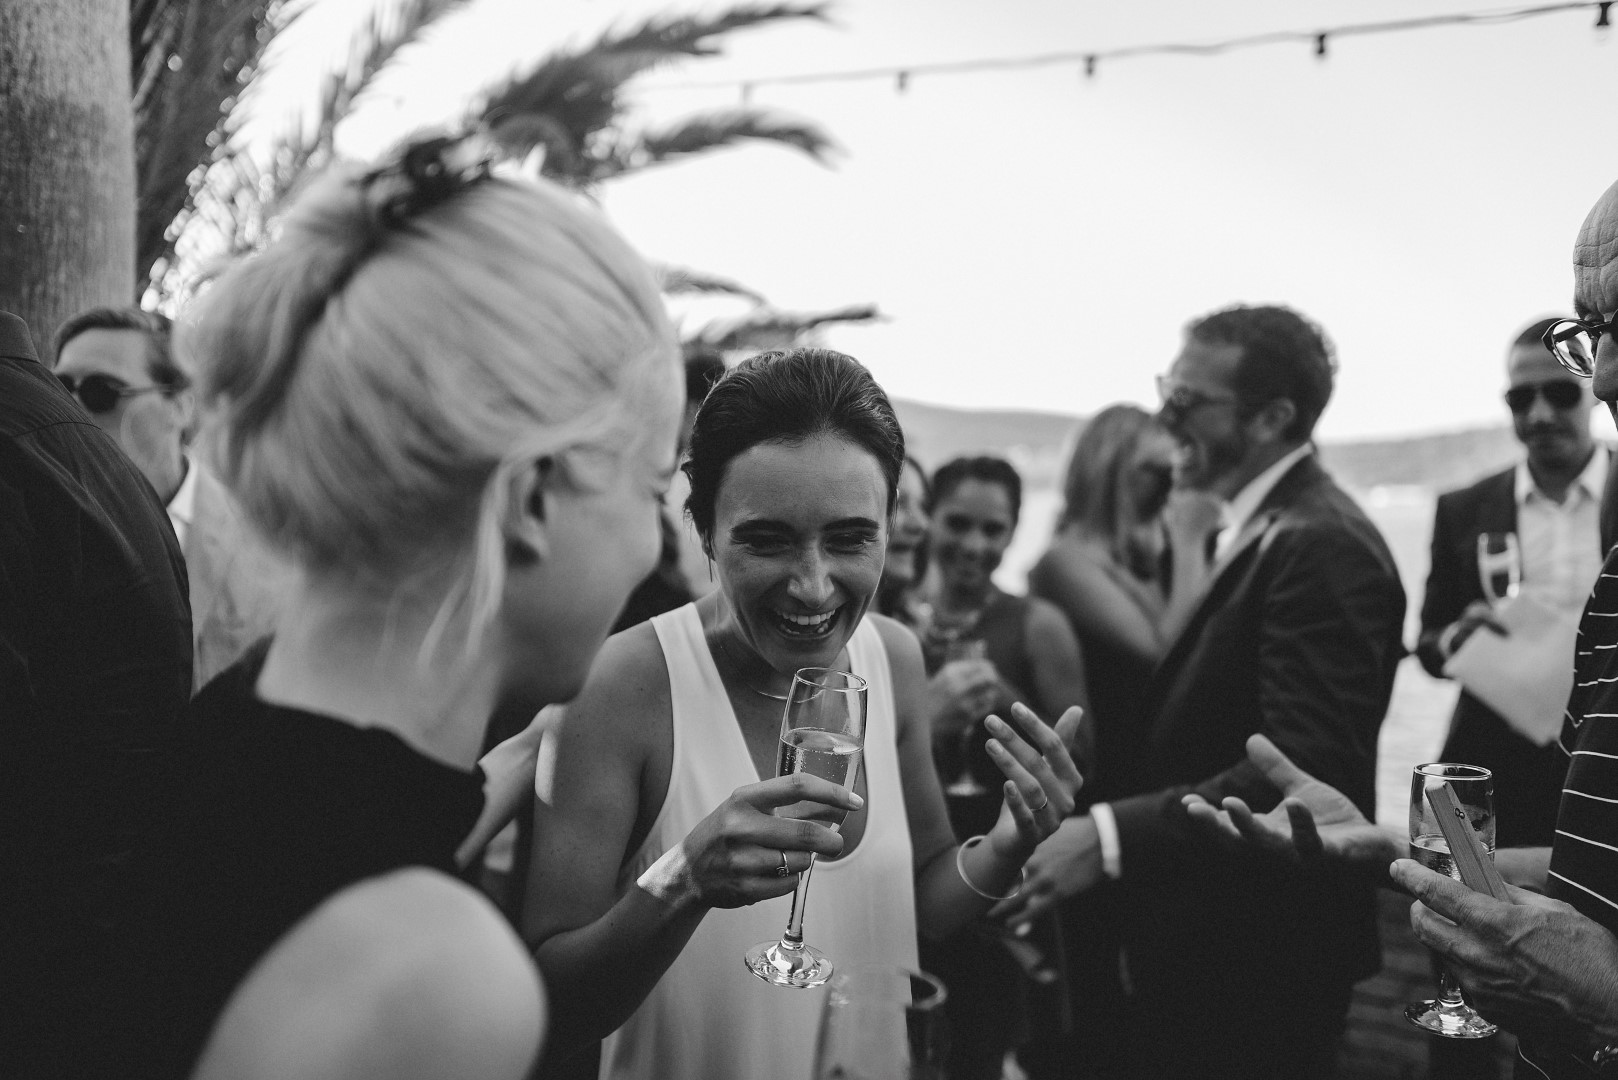 The photo is black and white, taken by Marko Marinkovic. In the focus we have the bride holding a champagne glass and laughing. In the background is the groom laughing with the guests.